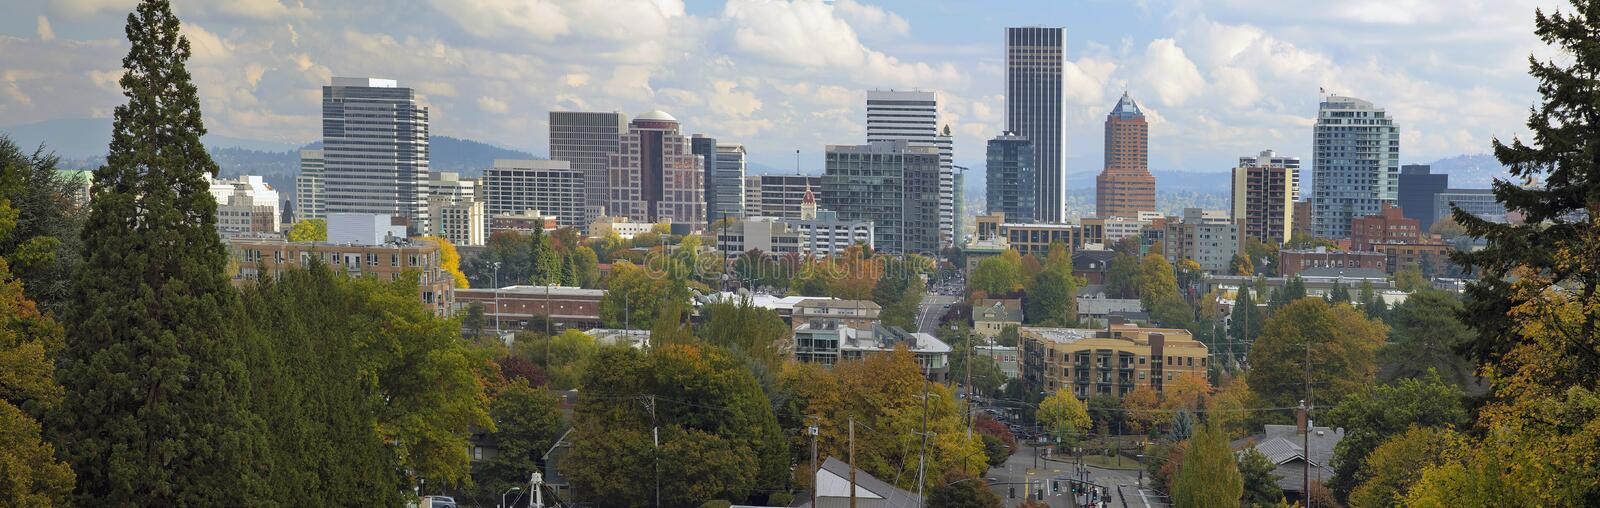 Download Portland Oregon Downtown City Skyline In Autumn Stock Image - Image: 27327545